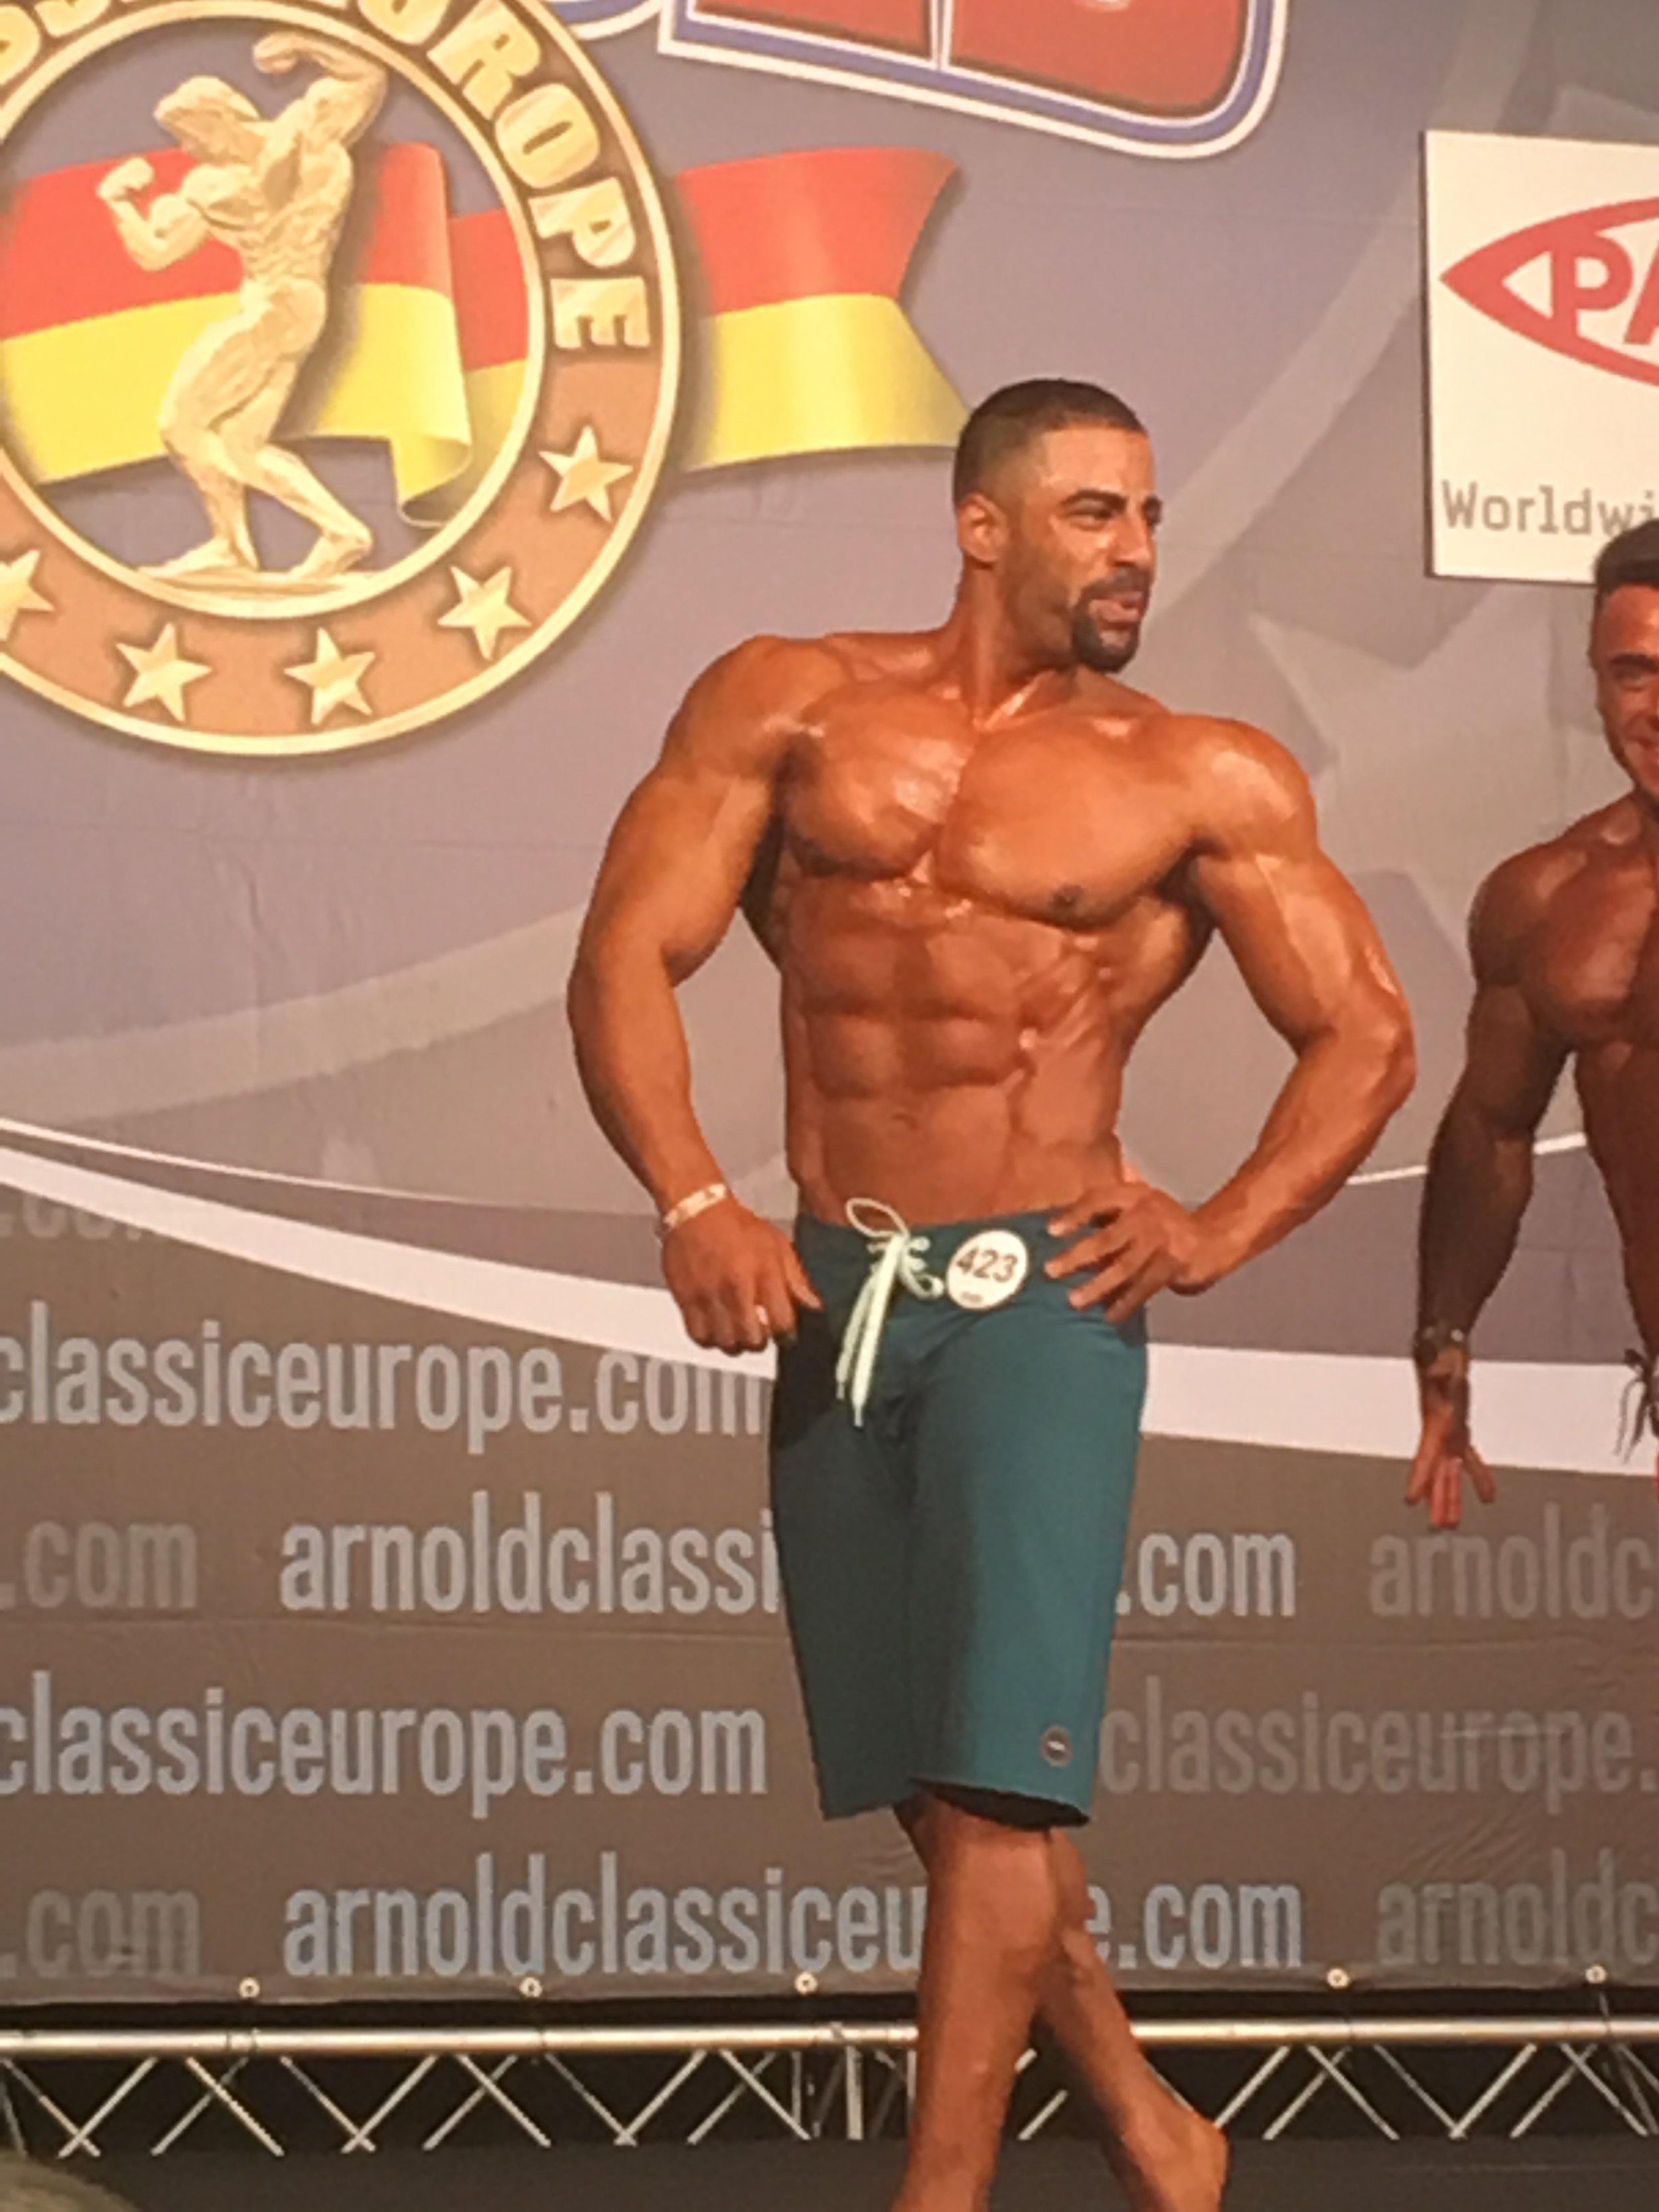 Mahmoud Elmawardy on his way to bronze in muscular men's physique.